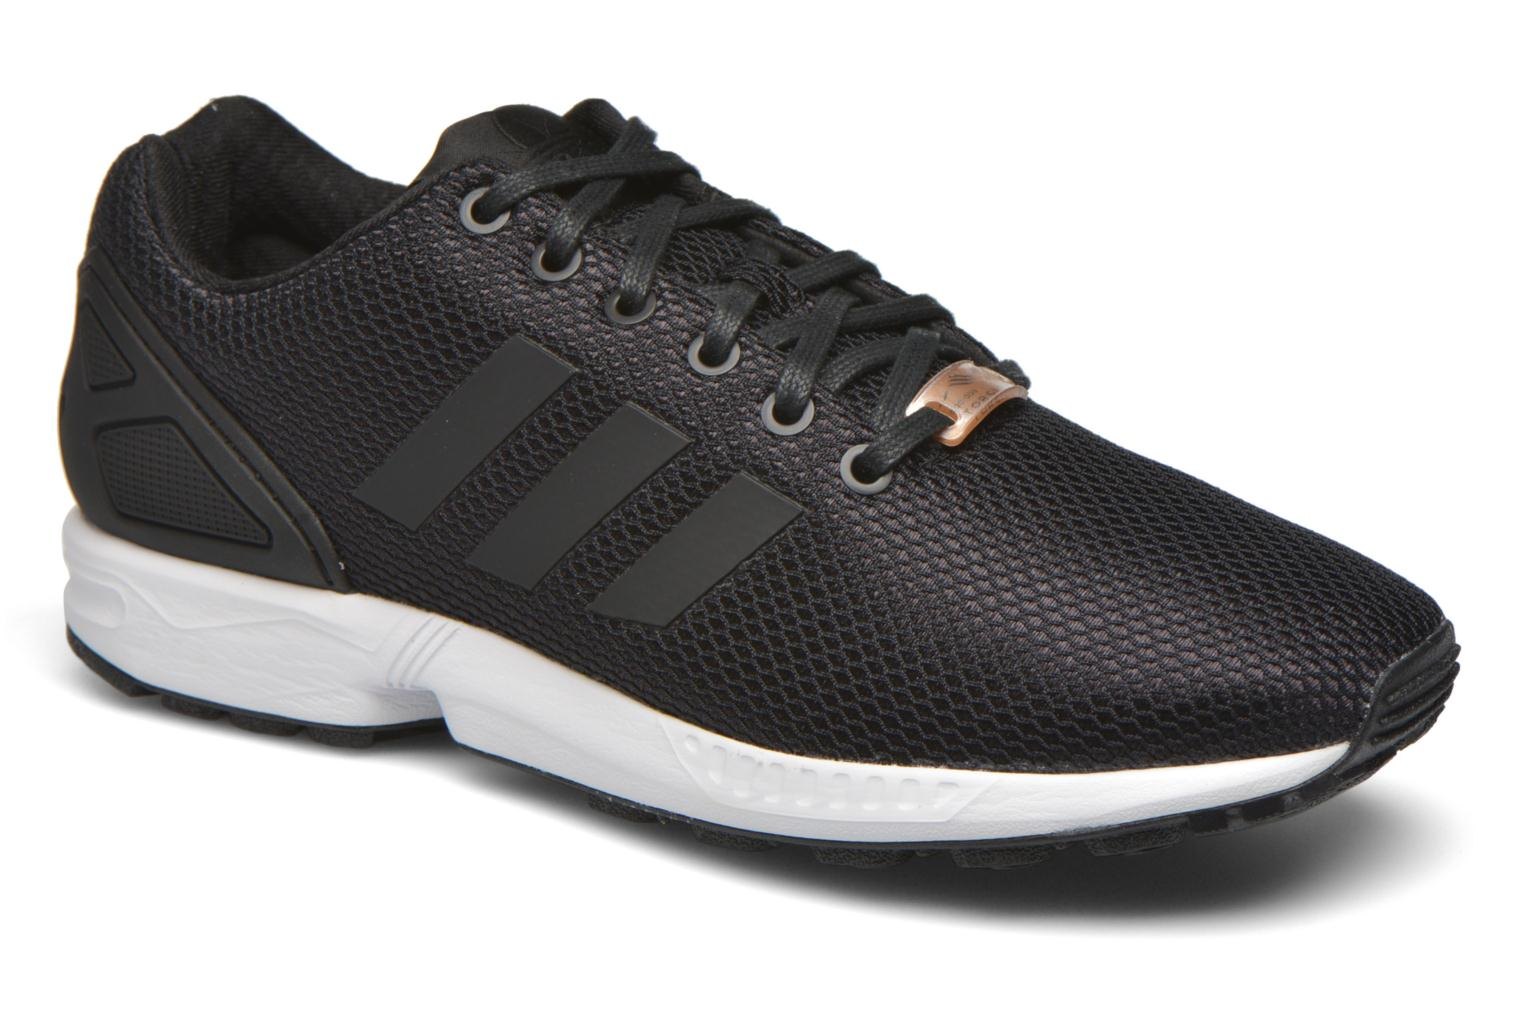 Homme adidas ZX Flux New Navy Street Shoes 2018 Mode